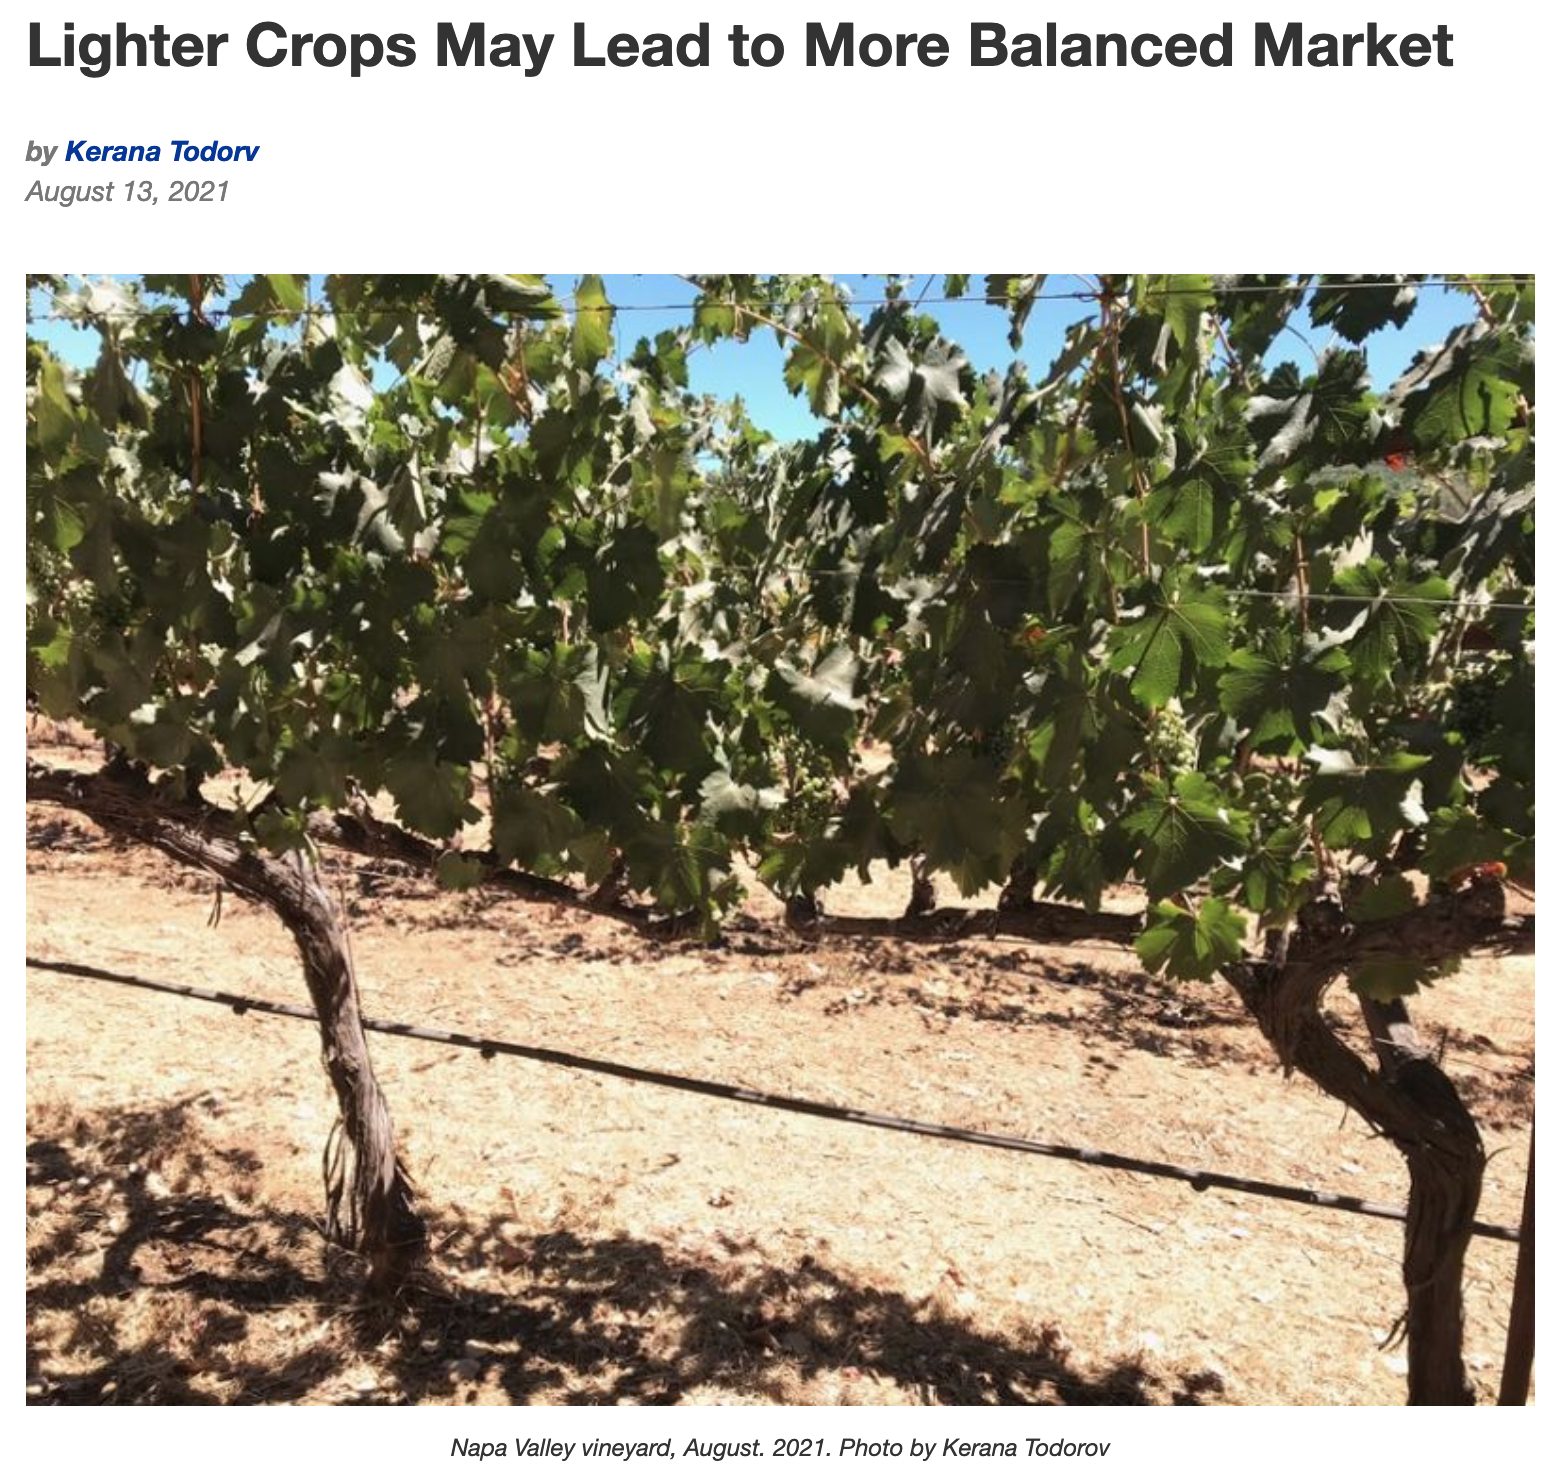 Lighter Crops May Lead to More Balanced Market – WineBusiness.com